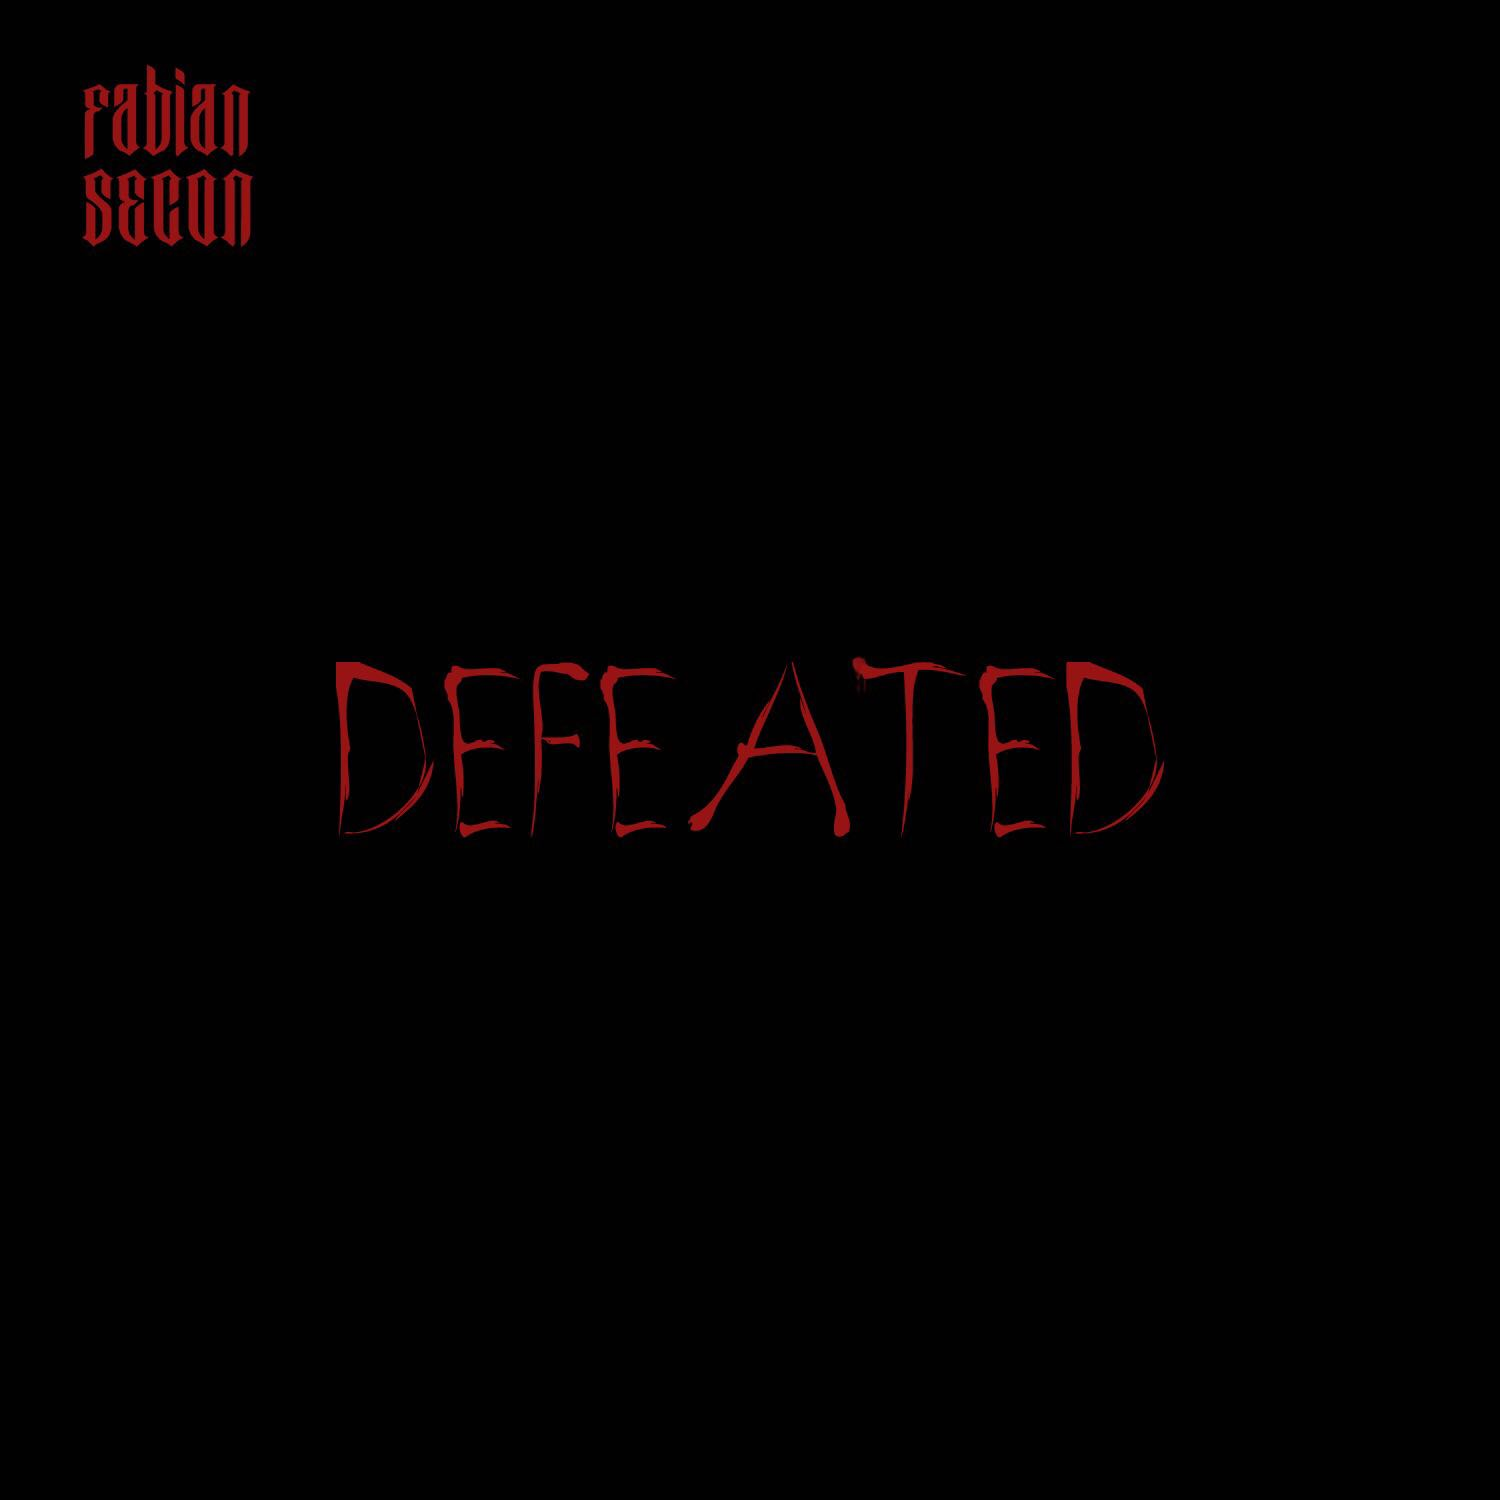 """New Music: Fabian Secon – """"Defeated"""""""